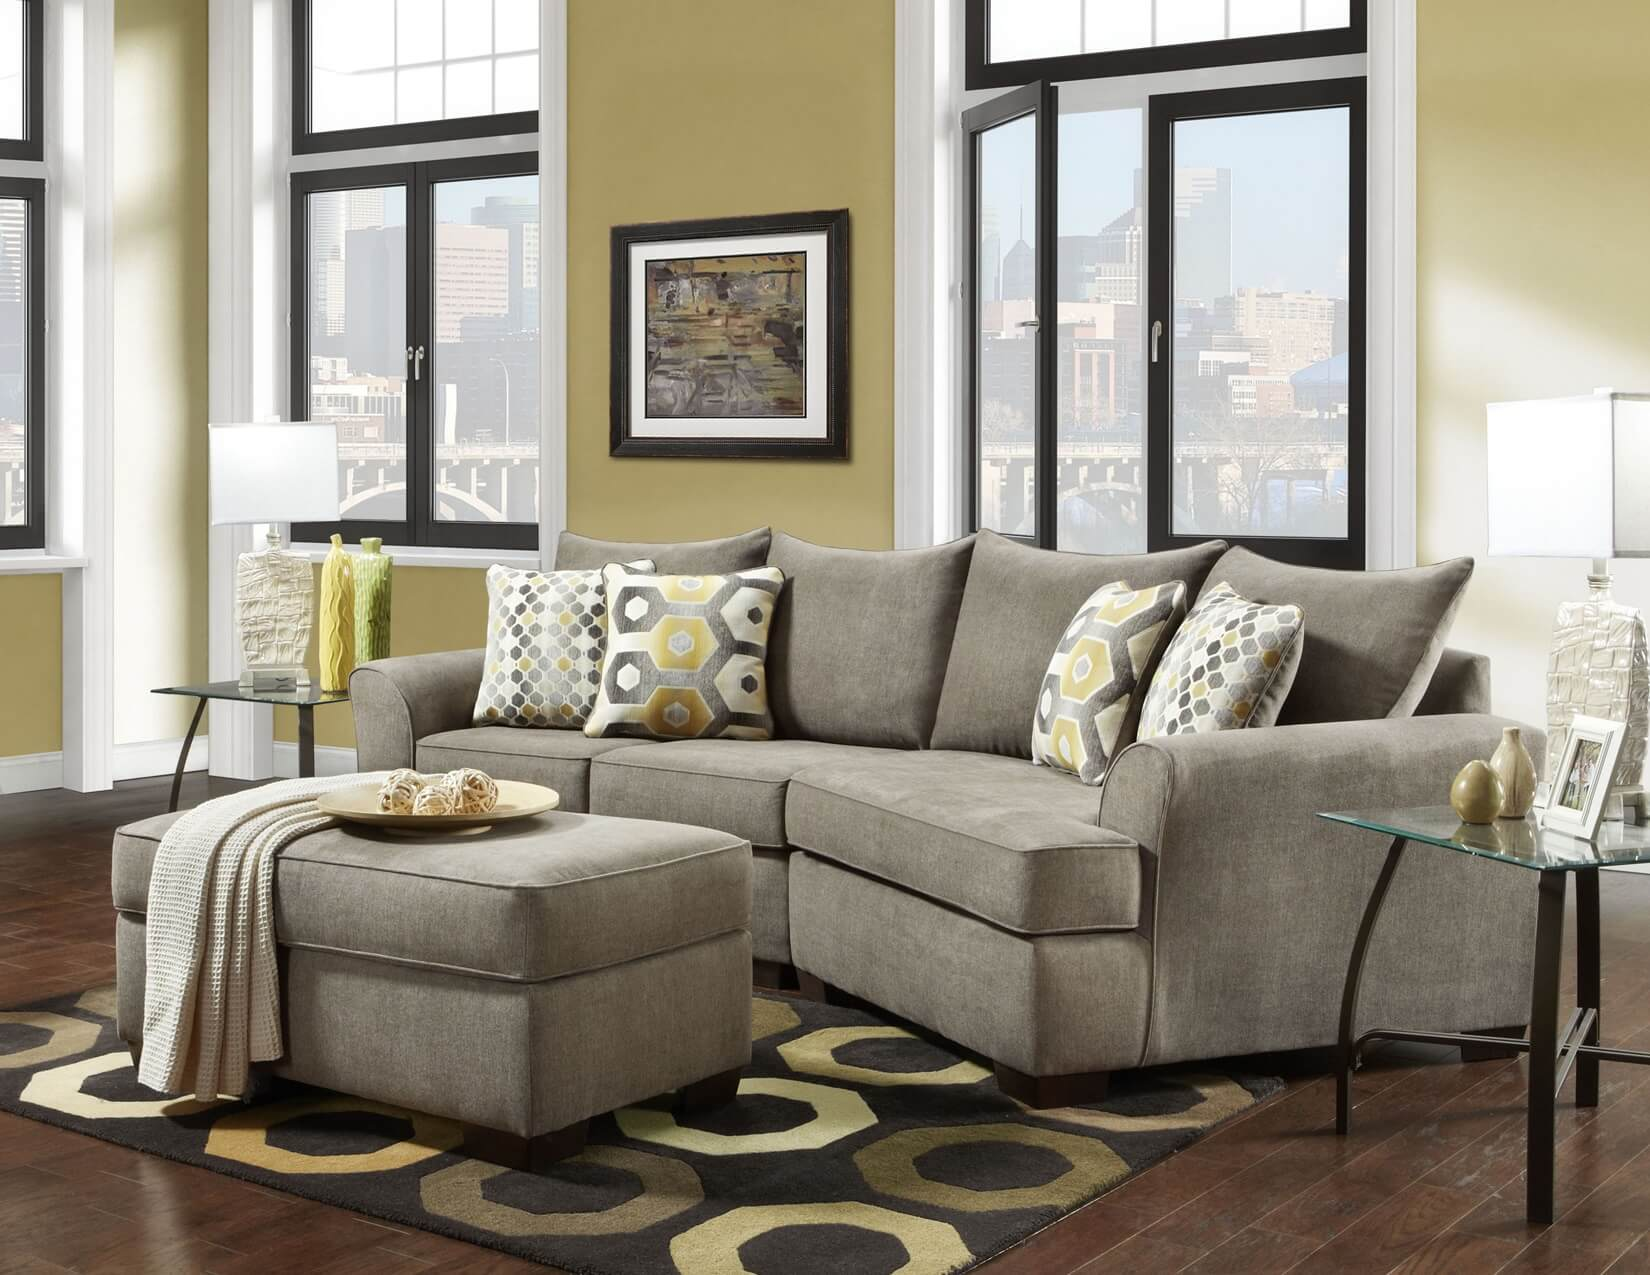 Stupendous Essence Platinum 2 Pc Cuddler Sectional Discontinued Home Interior And Landscaping Ponolsignezvosmurscom